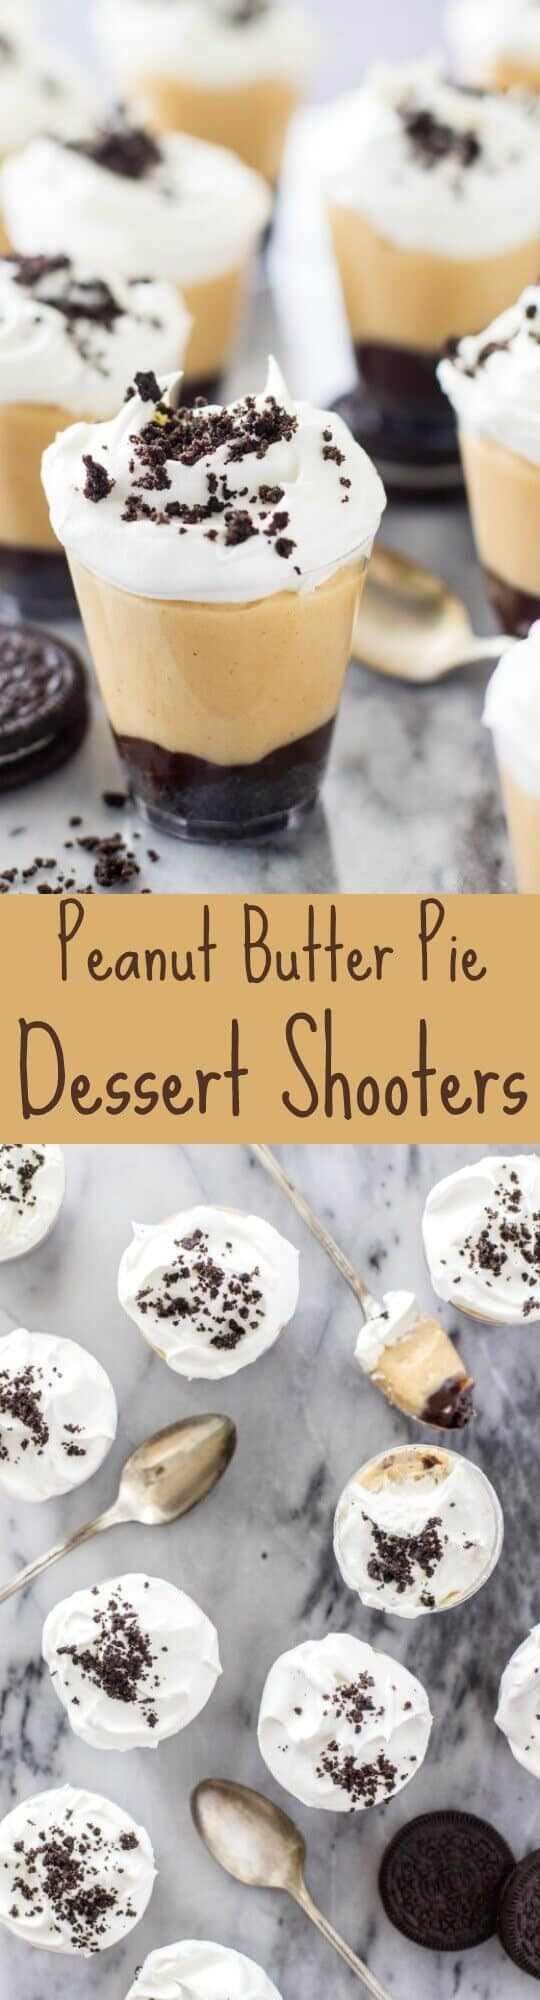 Peanut Butter Pie Dessert Shooters - I LOVE these! So fast and easy to make :)